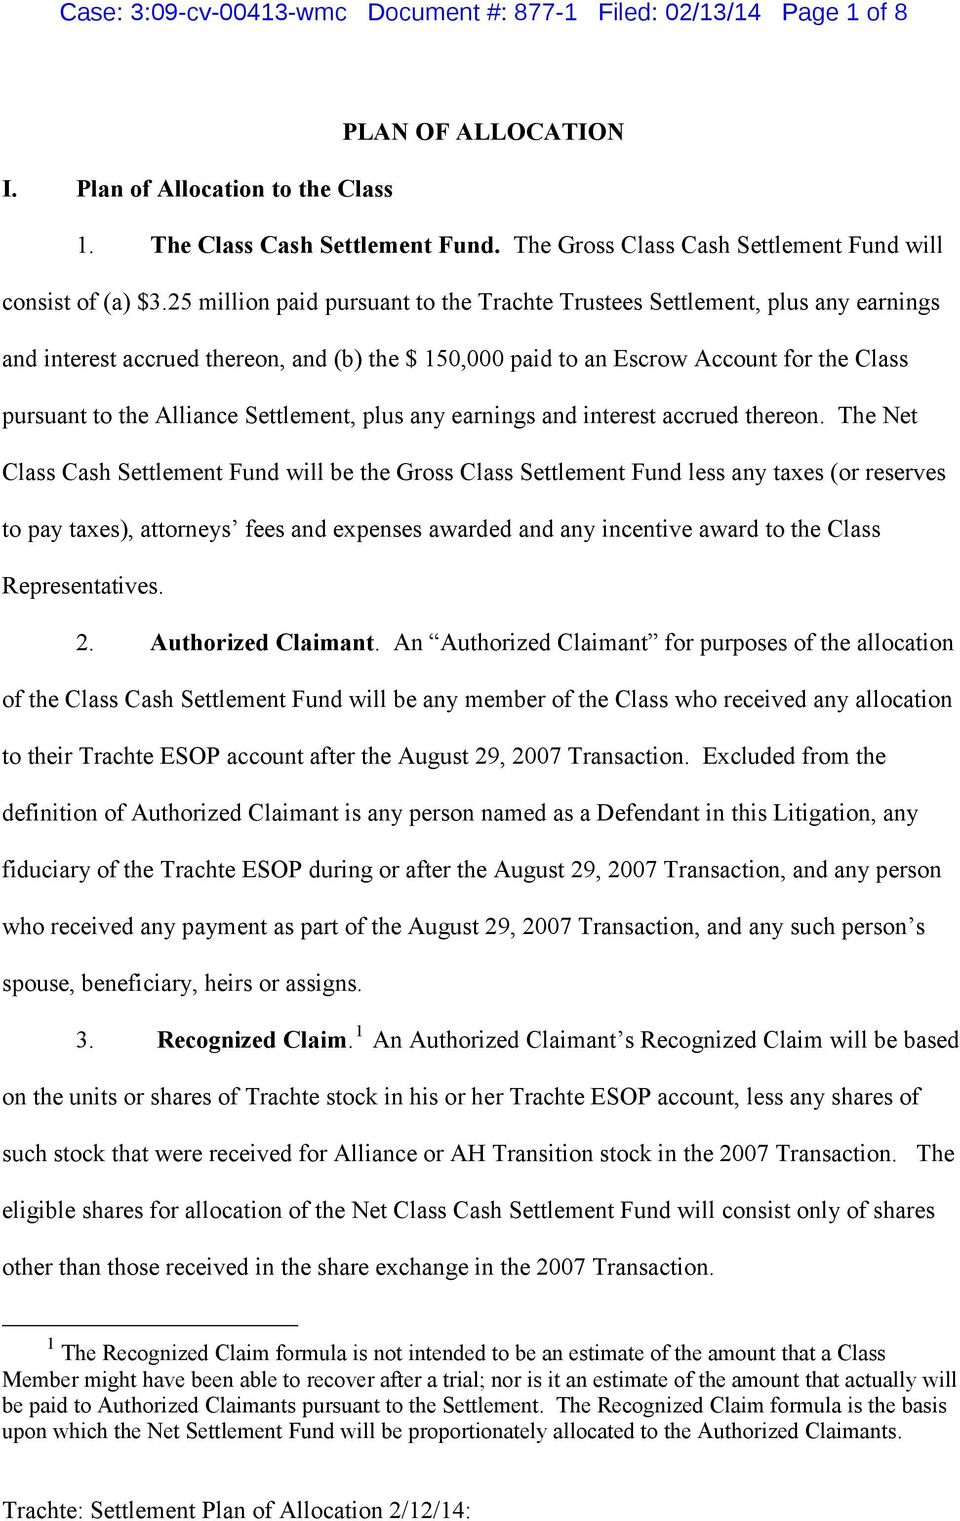 25 million paid pursuant to the Trachte Trustees Settlement, plus any earnings and interest accrued thereon, and (b) the $ 150,000 paid to an Escrow Account for the Class pursuant to the Alliance